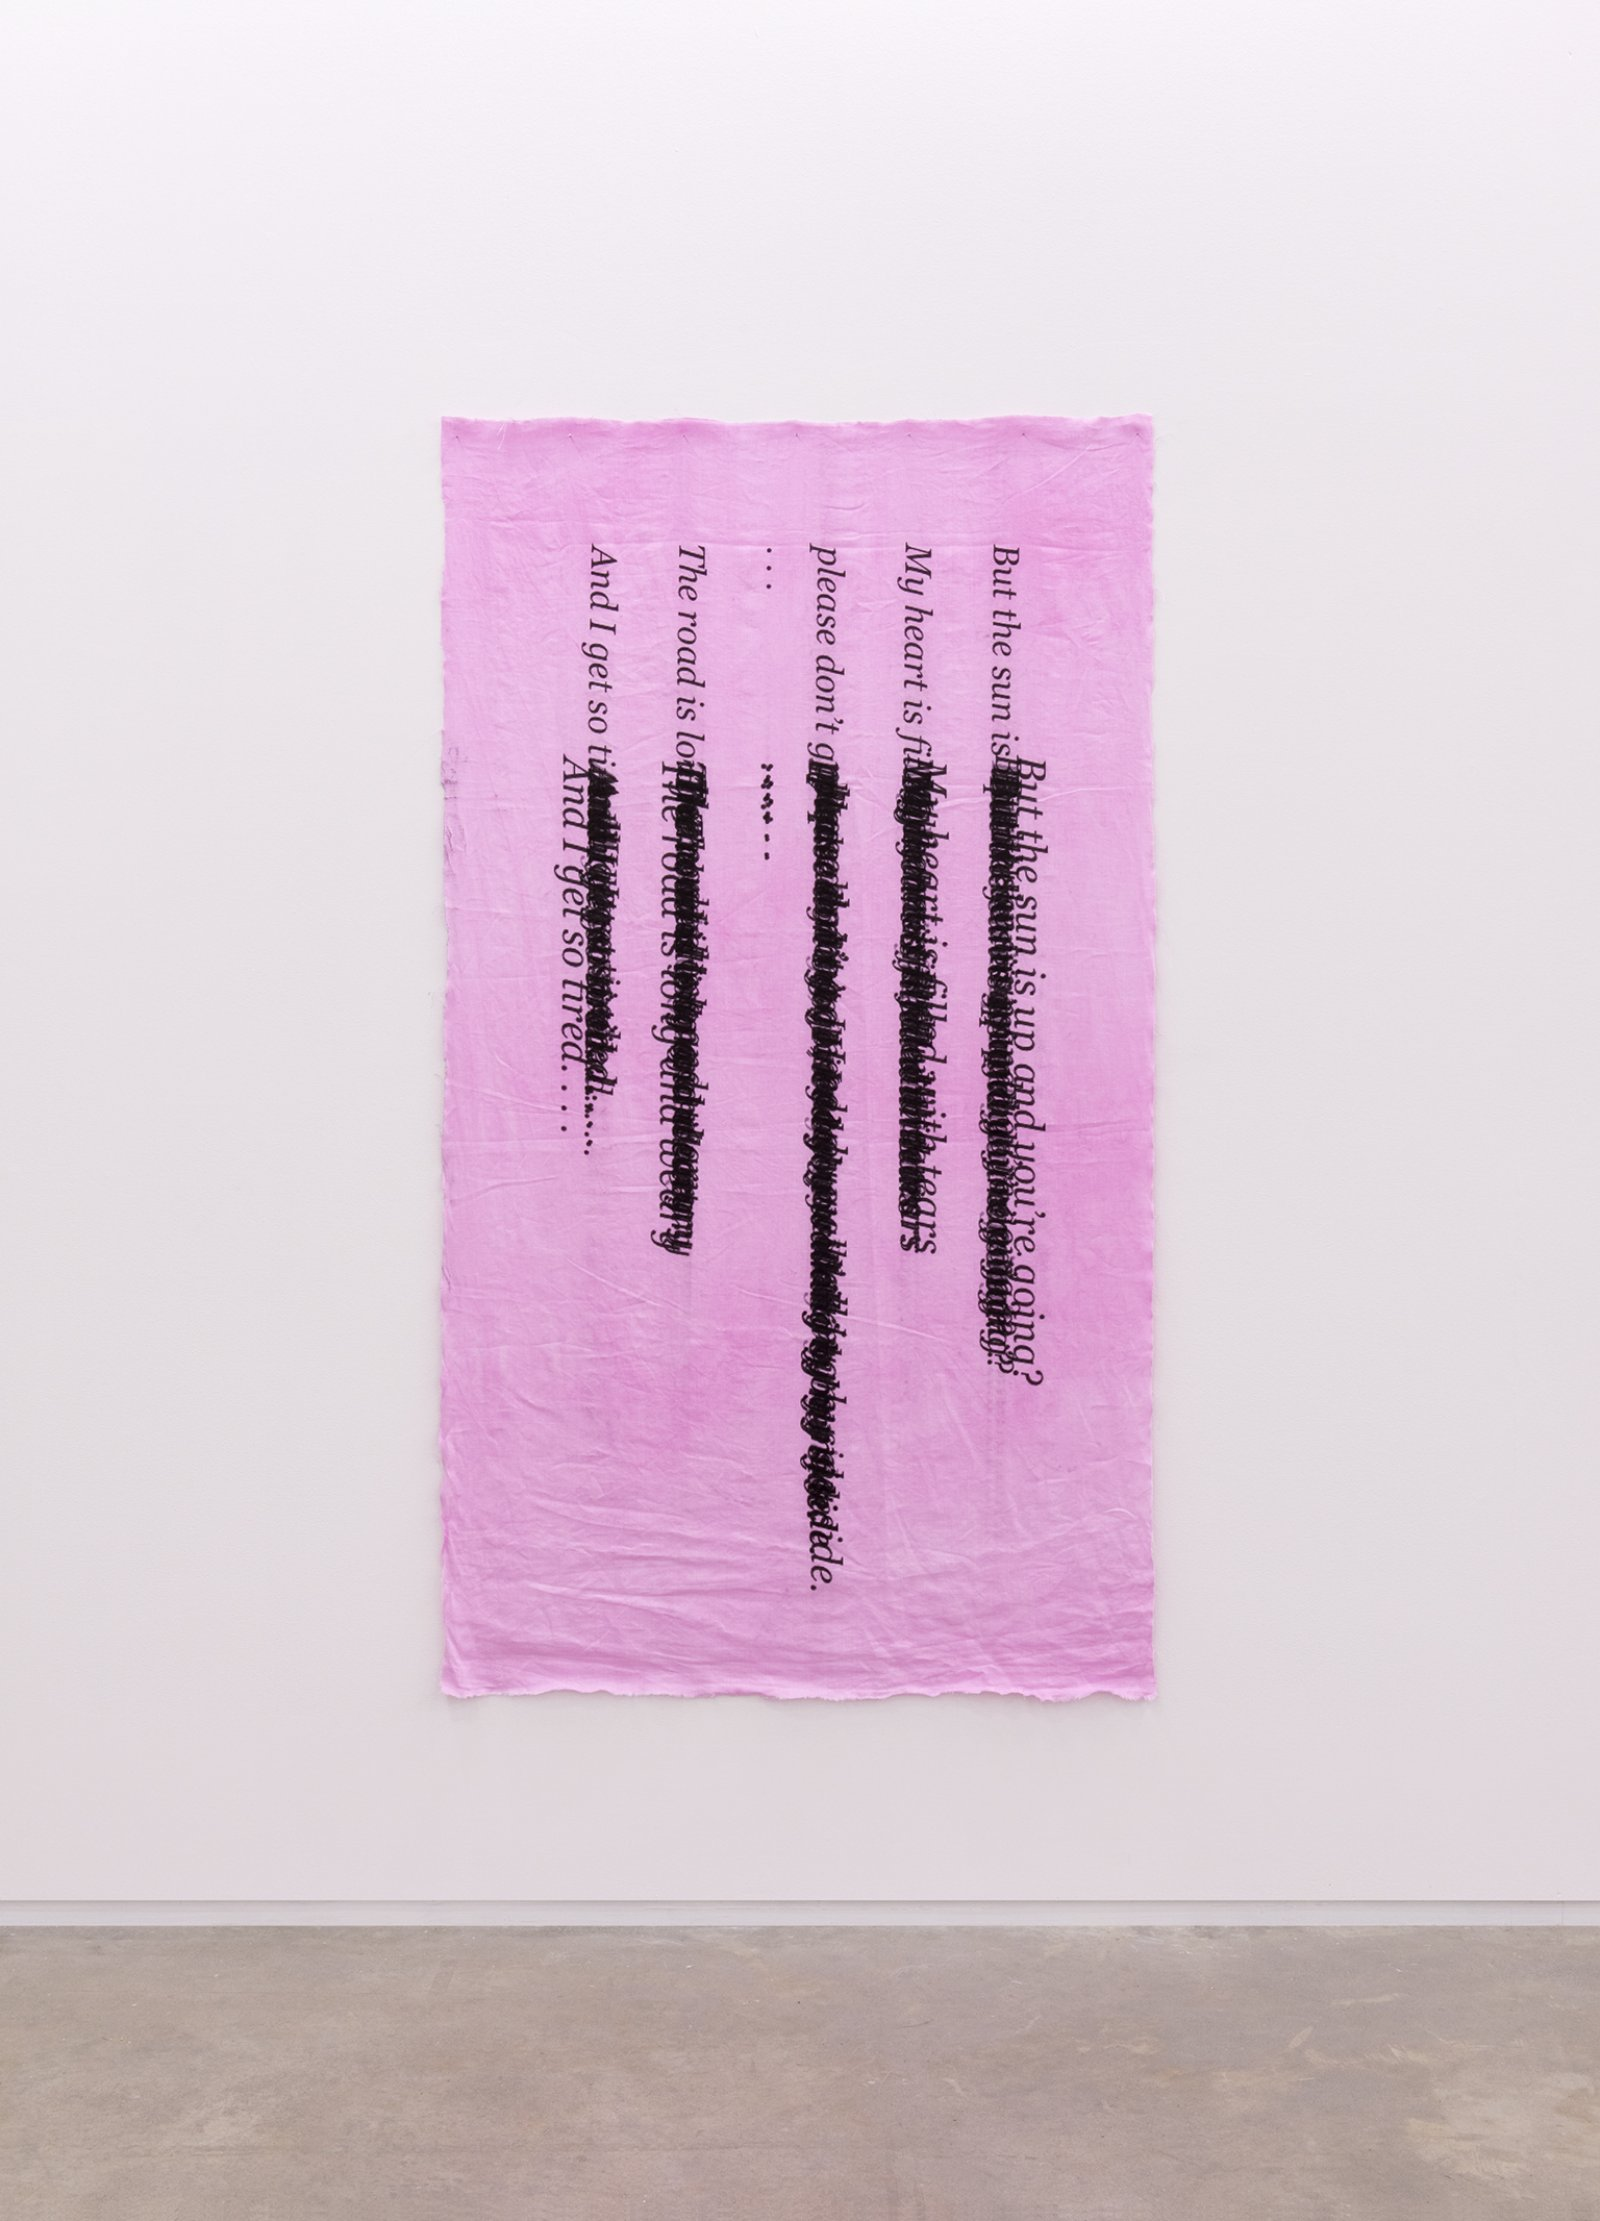 Duane Linklater, Ellipses, 2014, inkjet print on hand dyed linen, nails, 79 x 4 in. (200 x 110 cm) by Duane Linklater